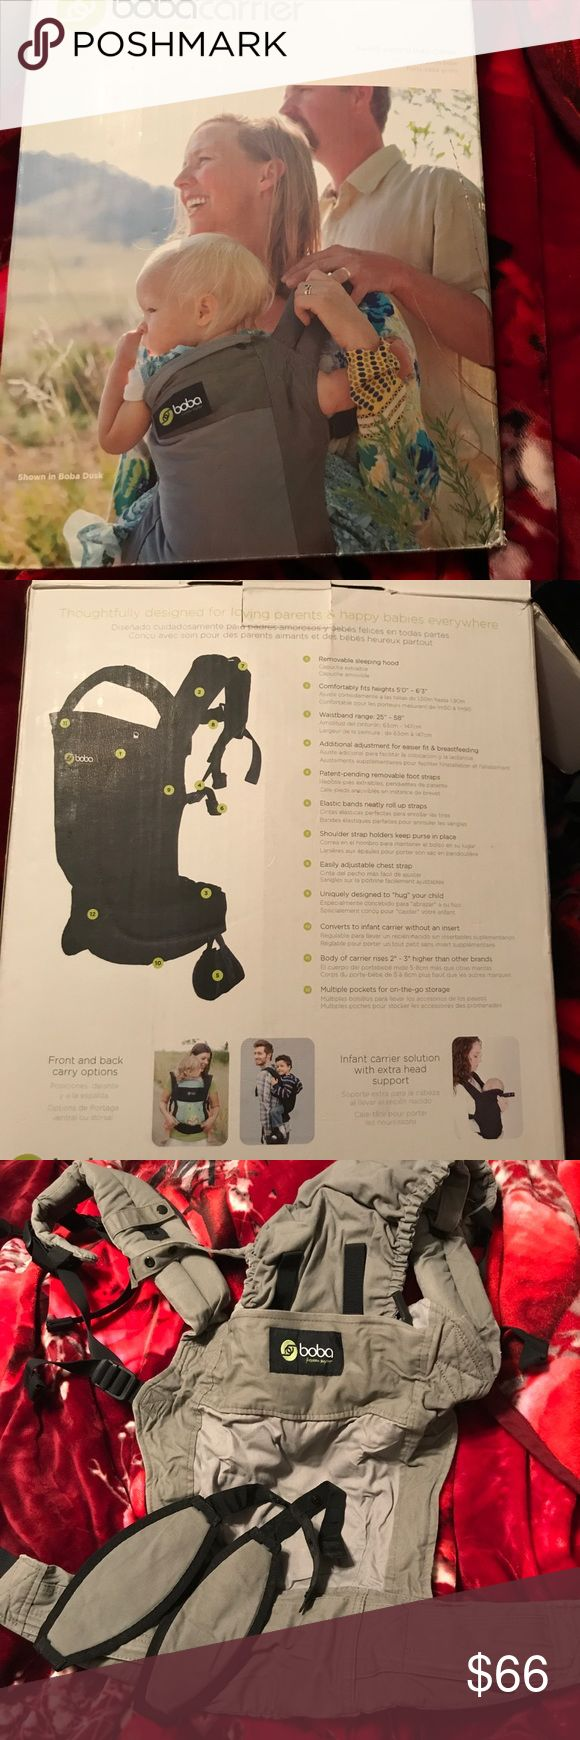 Boba Carrier Excellent condition. Used once. boba Other